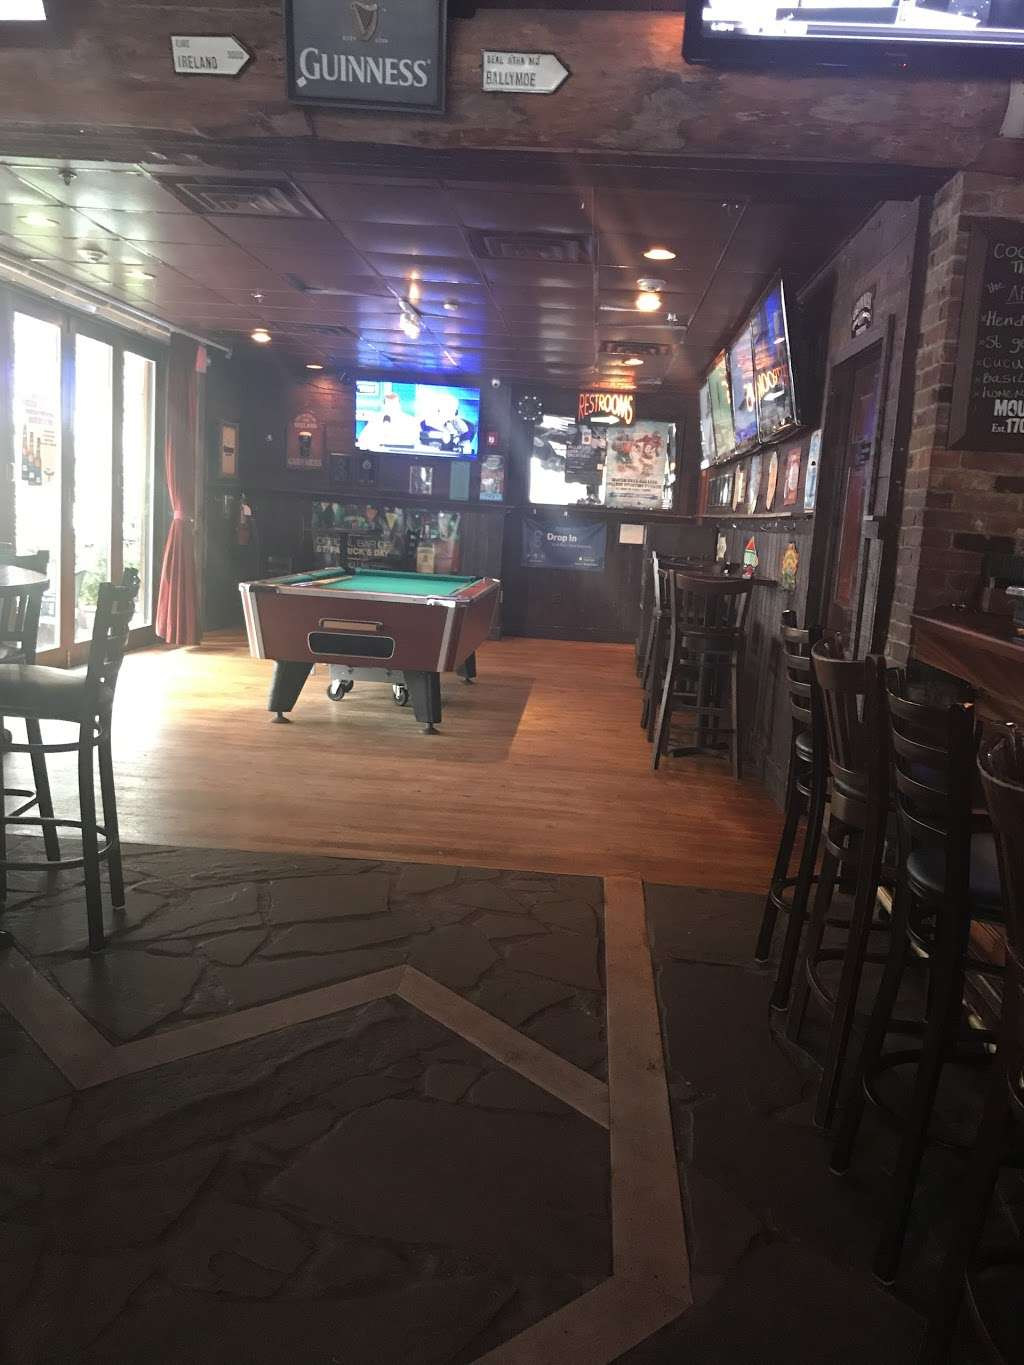 McSwiggans Pub - restaurant  | Photo 5 of 10 | Address: 110 1st St, Hoboken, NJ 07030, USA | Phone: (201) 798-6700